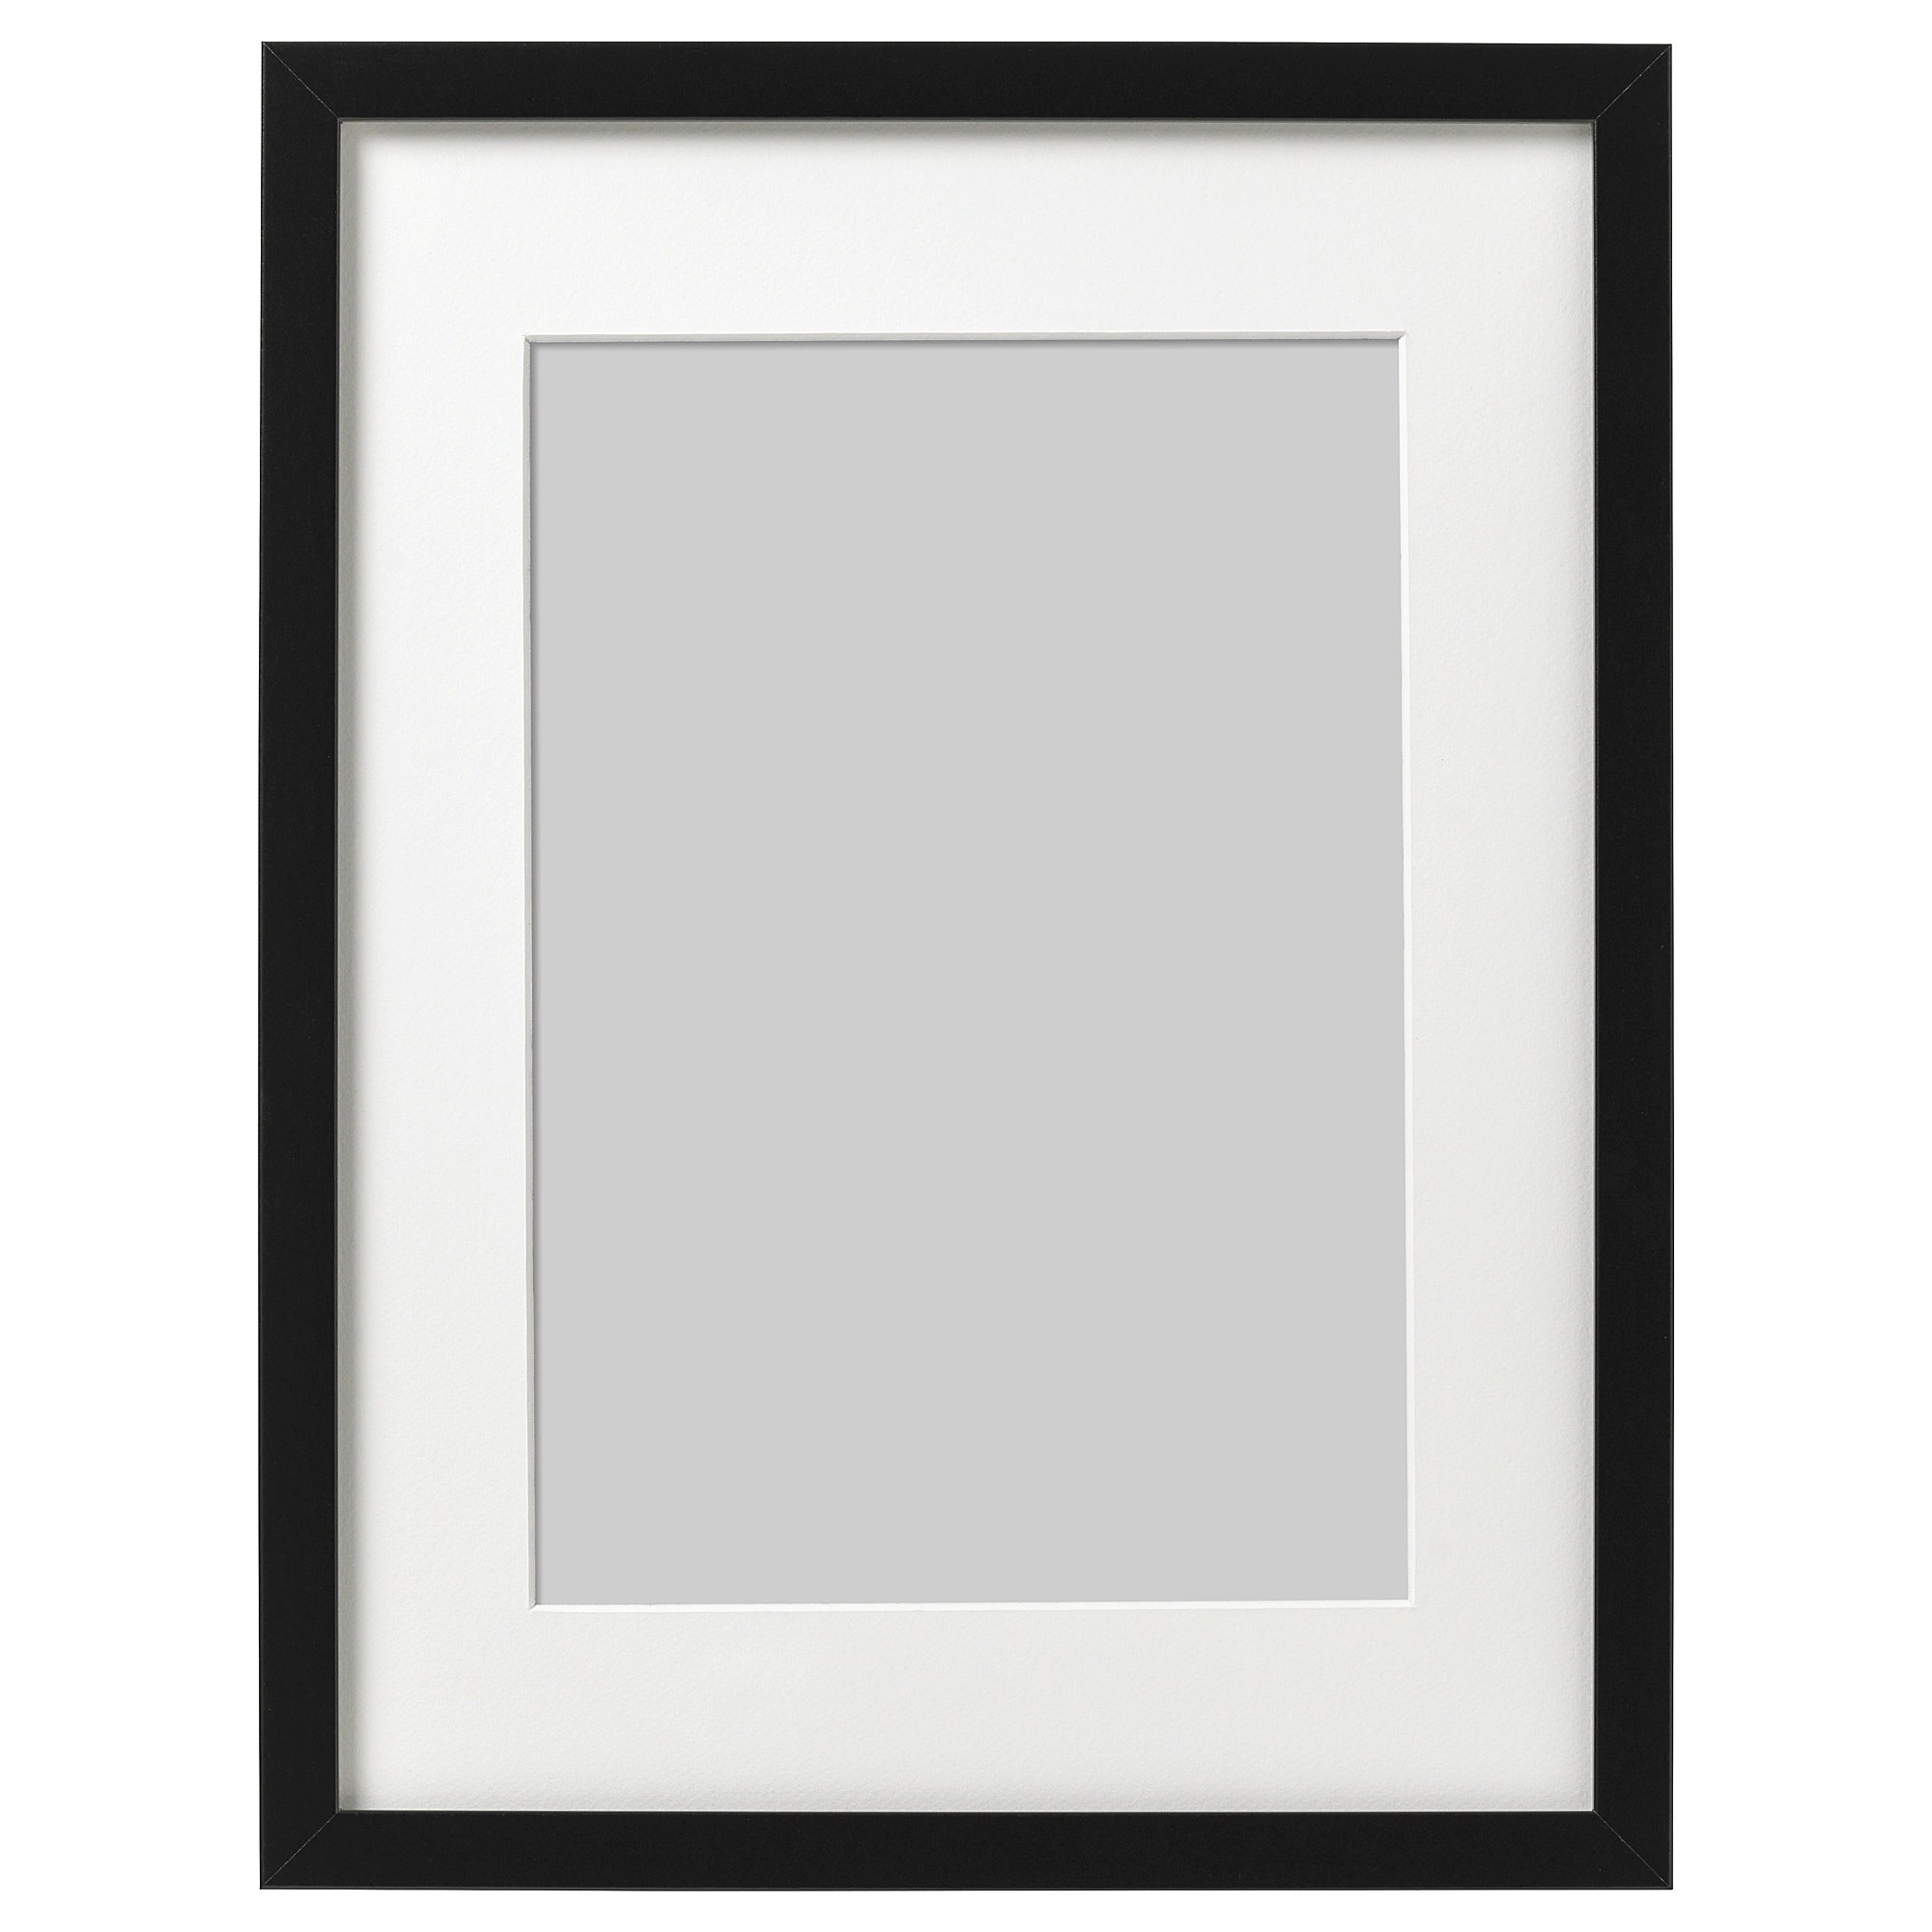 Frame Picture Ribba Frame Black